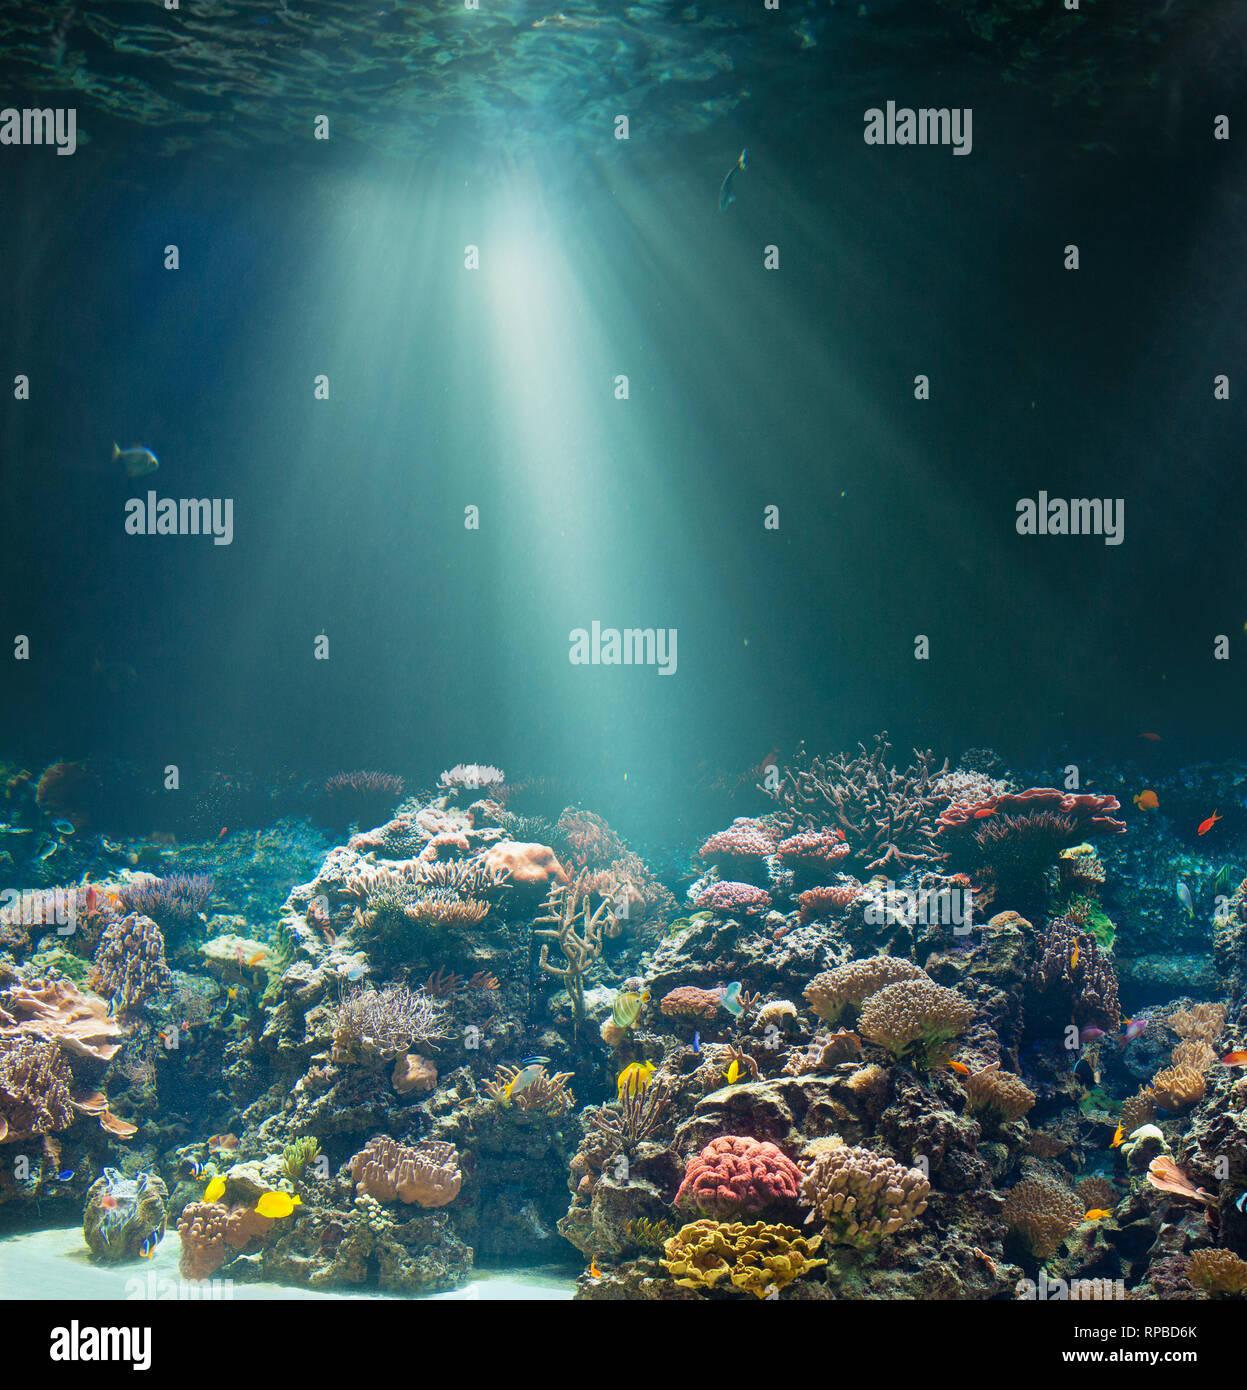 Sea or ocean seabed with coral reef. Underwater view. - Stock Image